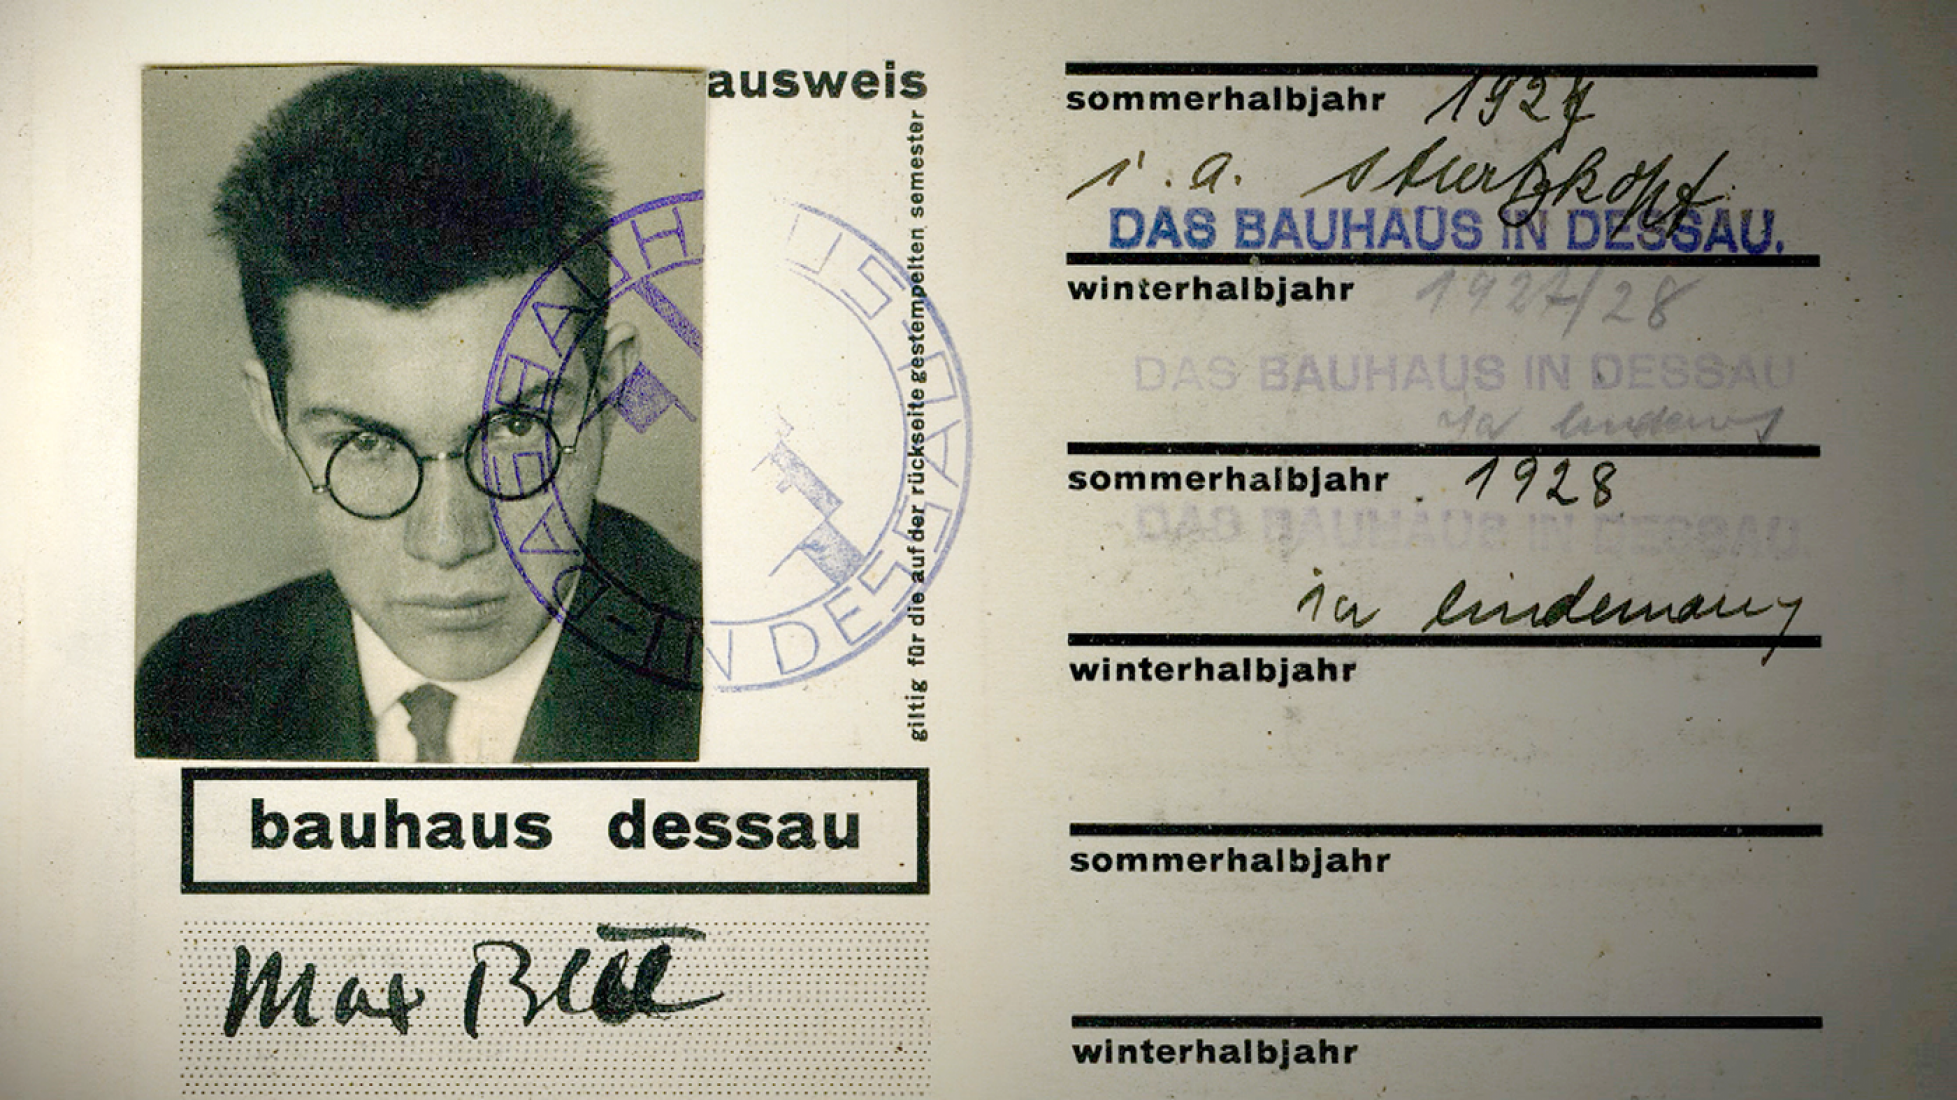 Max Bill's student card of the Bauhaus 1927-1928. Image from the documentary film